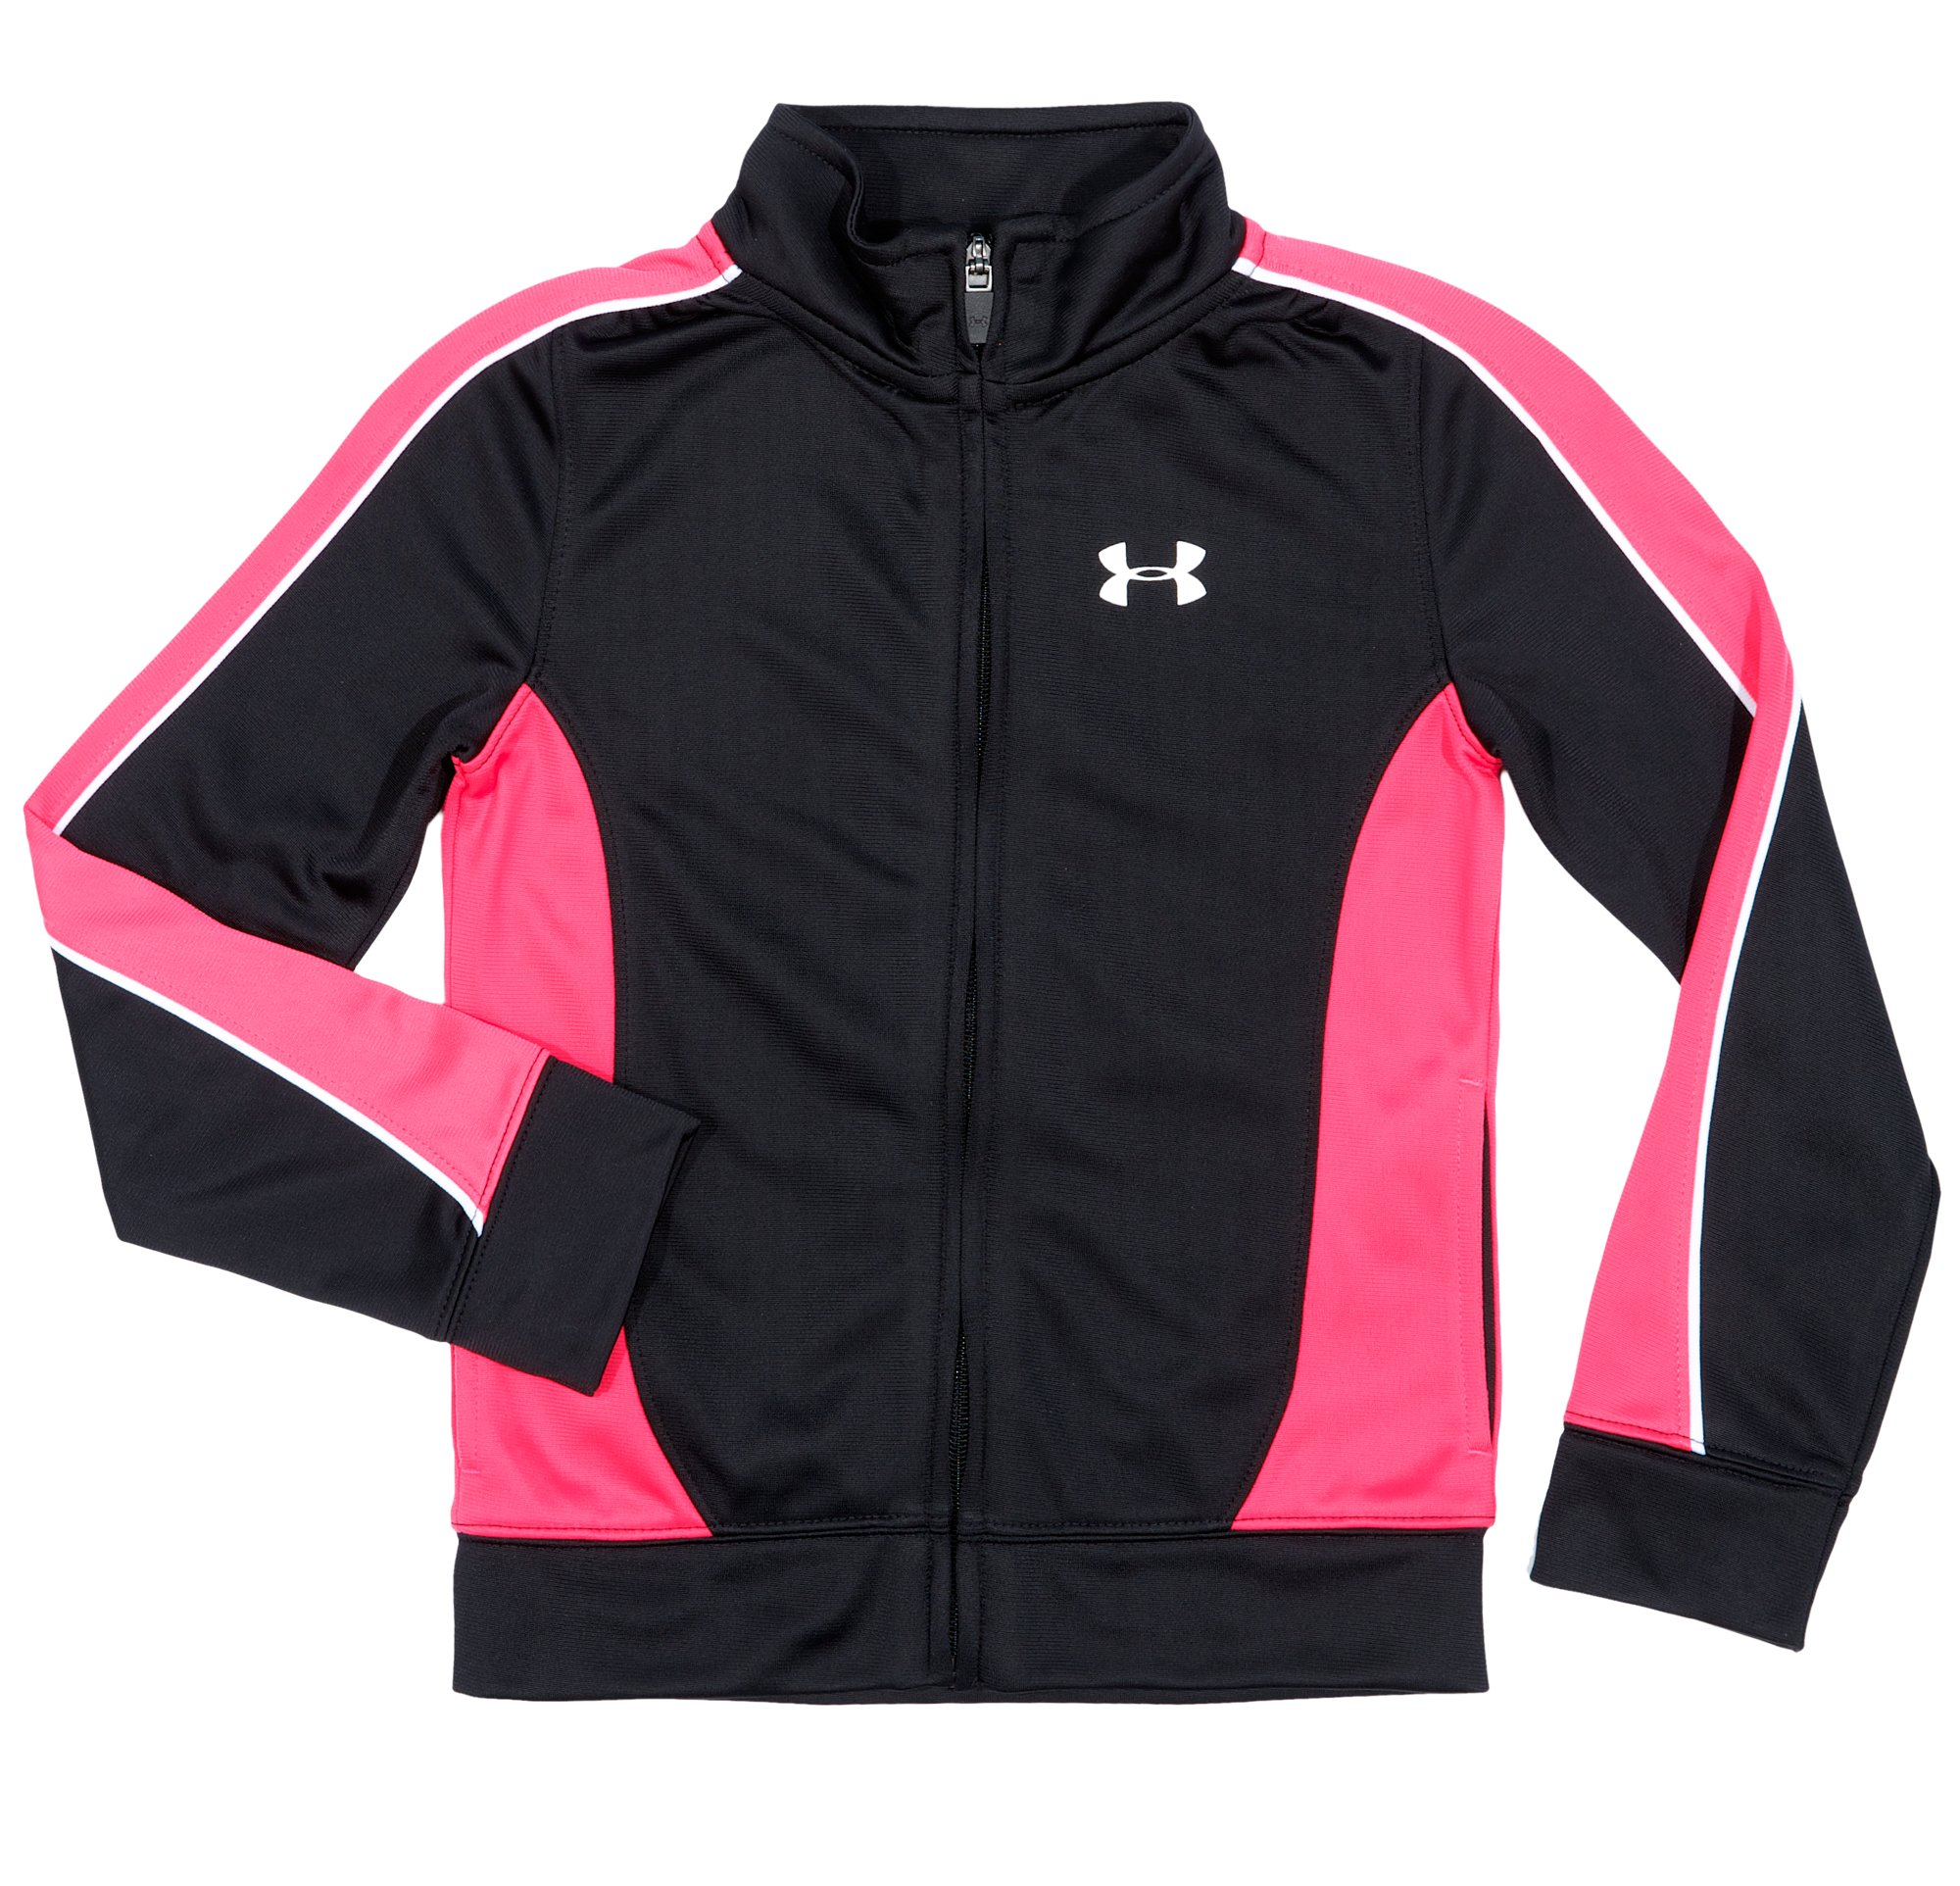 Girls' Toddler UA Winner's Circle Track Jacket, Black , Laydown